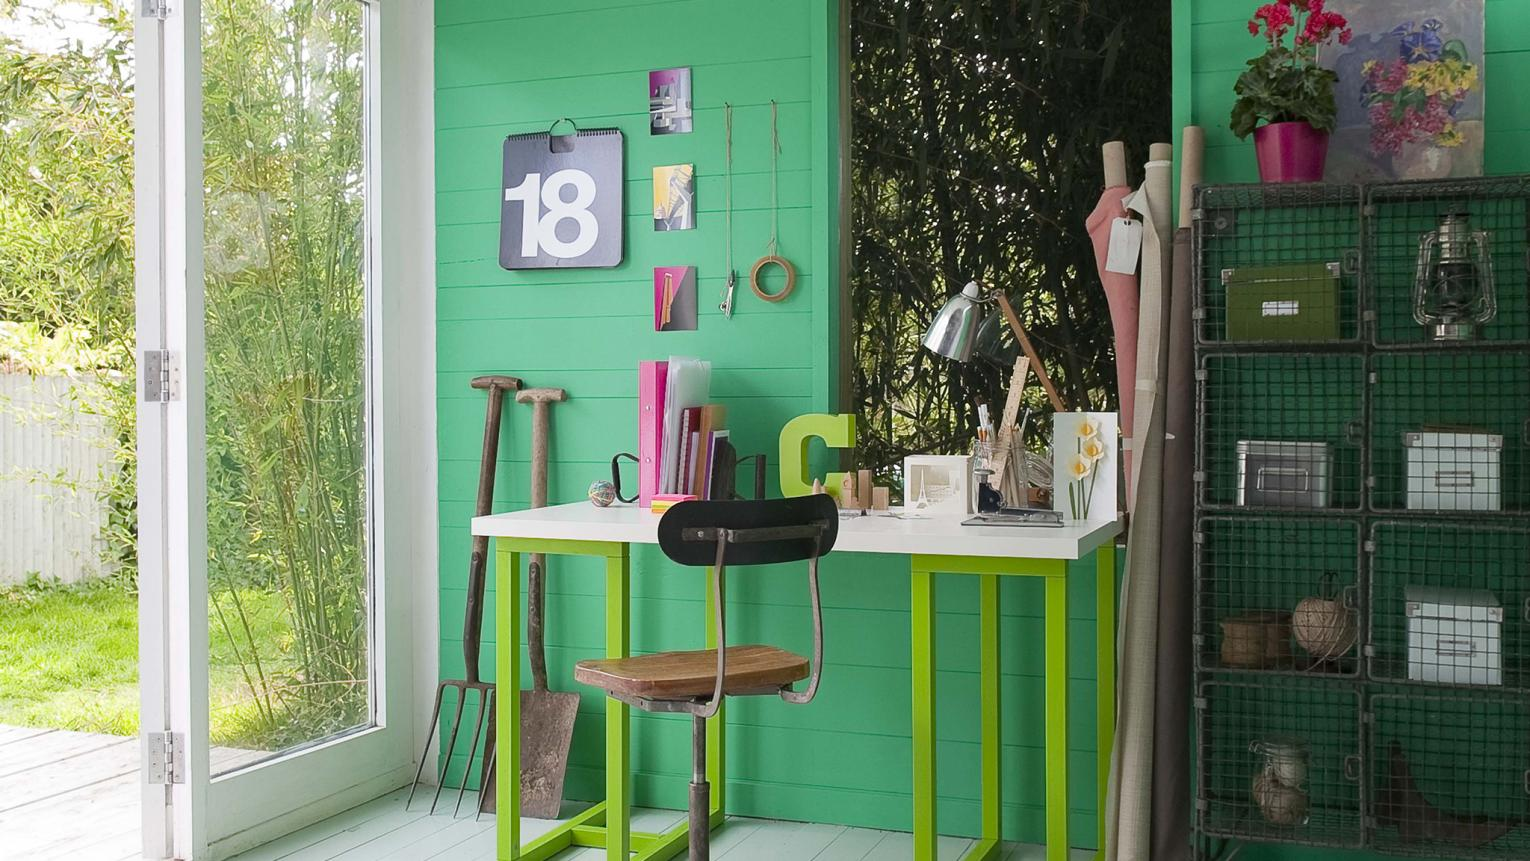 Study painted in various shades of green features a work space and a storage area.